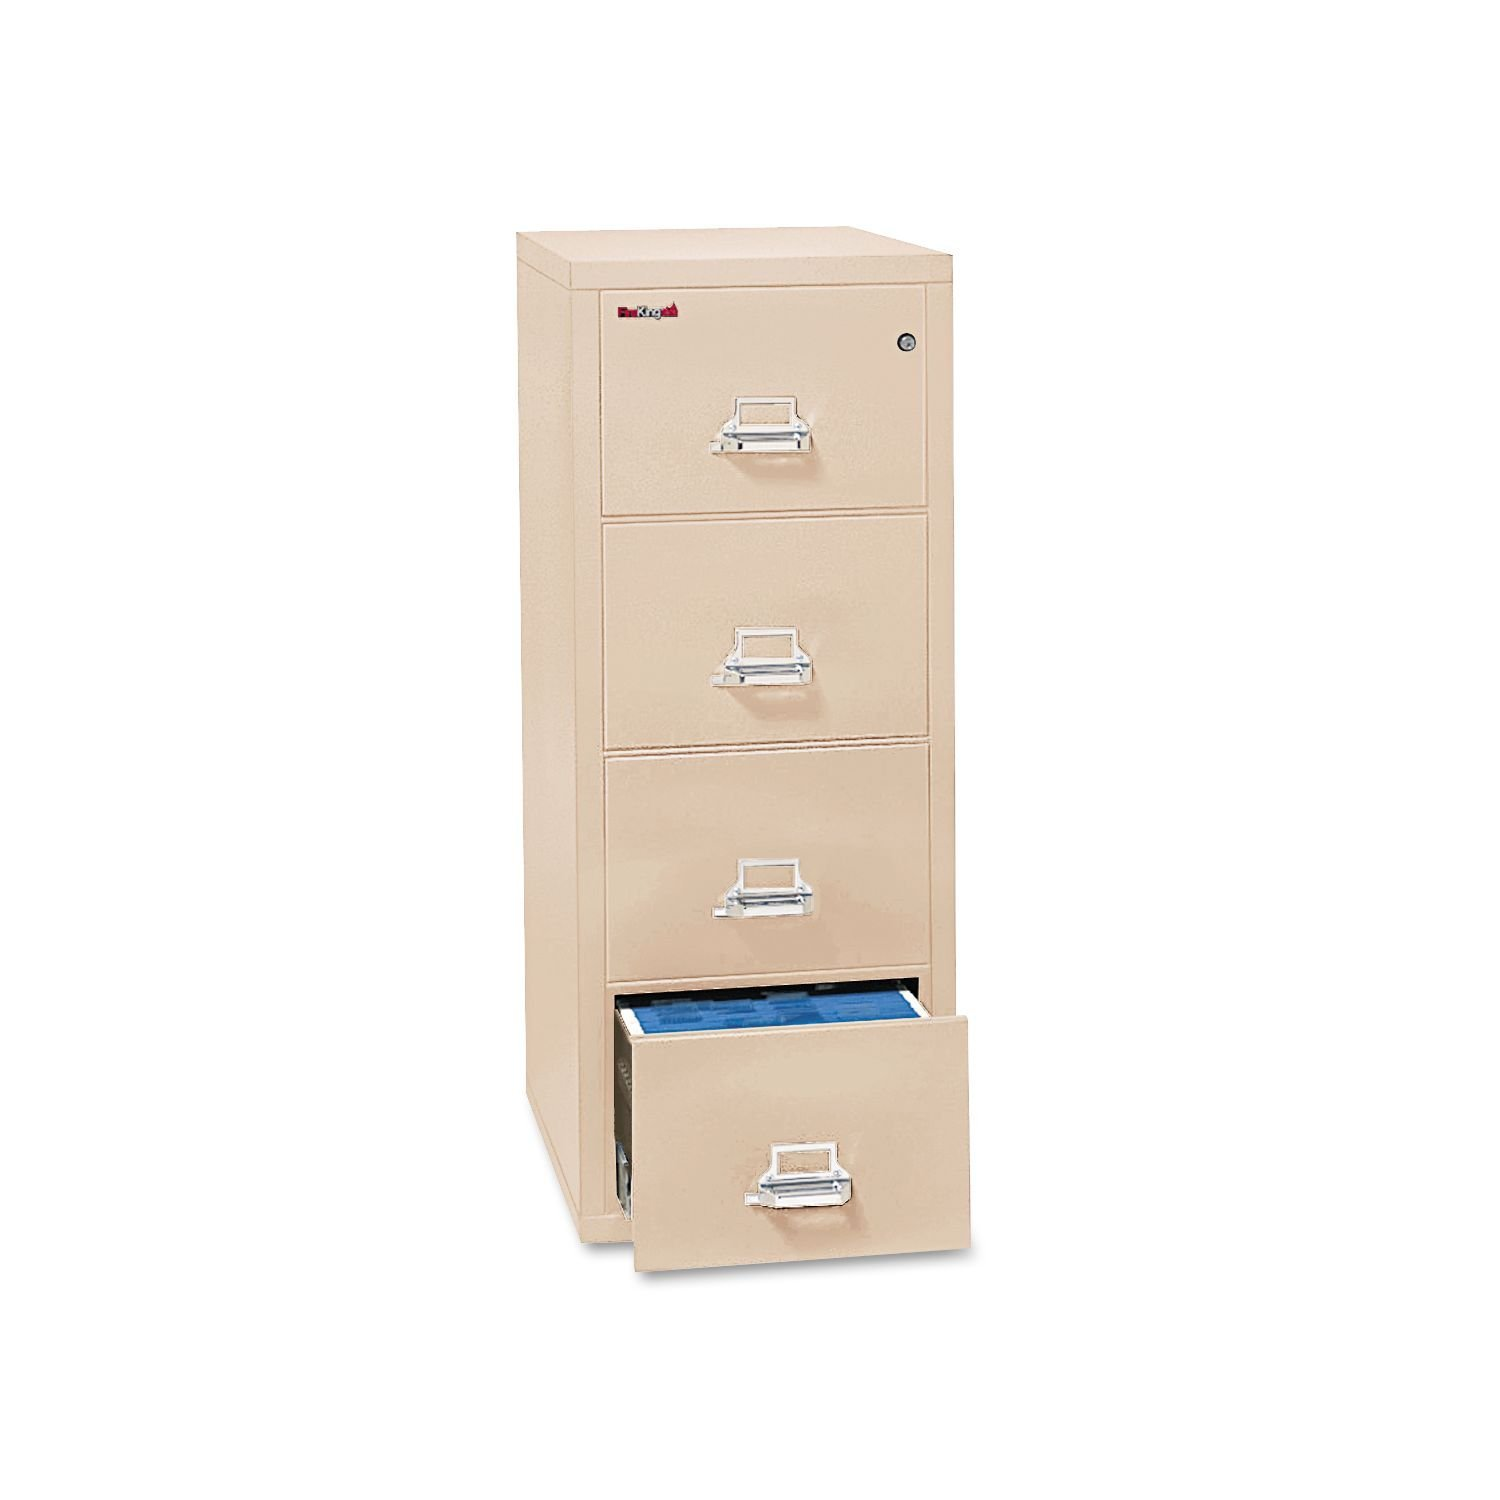 cool fireproof file cabinet in cream with four drawers and white handle for home office furniture ideas